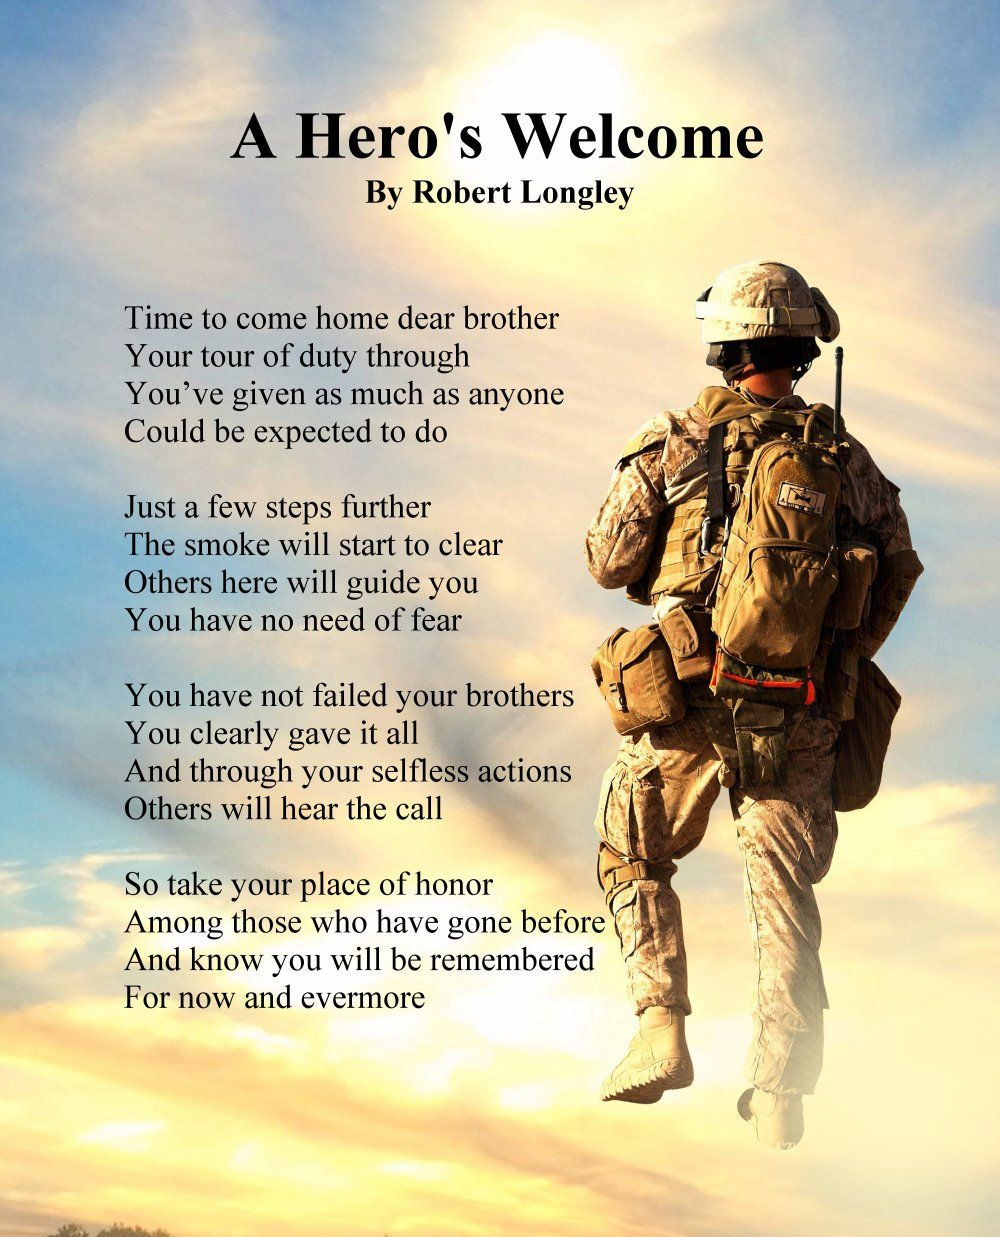 Birthday Wallpaper With Quotes For Brother A Hero S Welcome Army Version 2 Memorial Poem Echoes